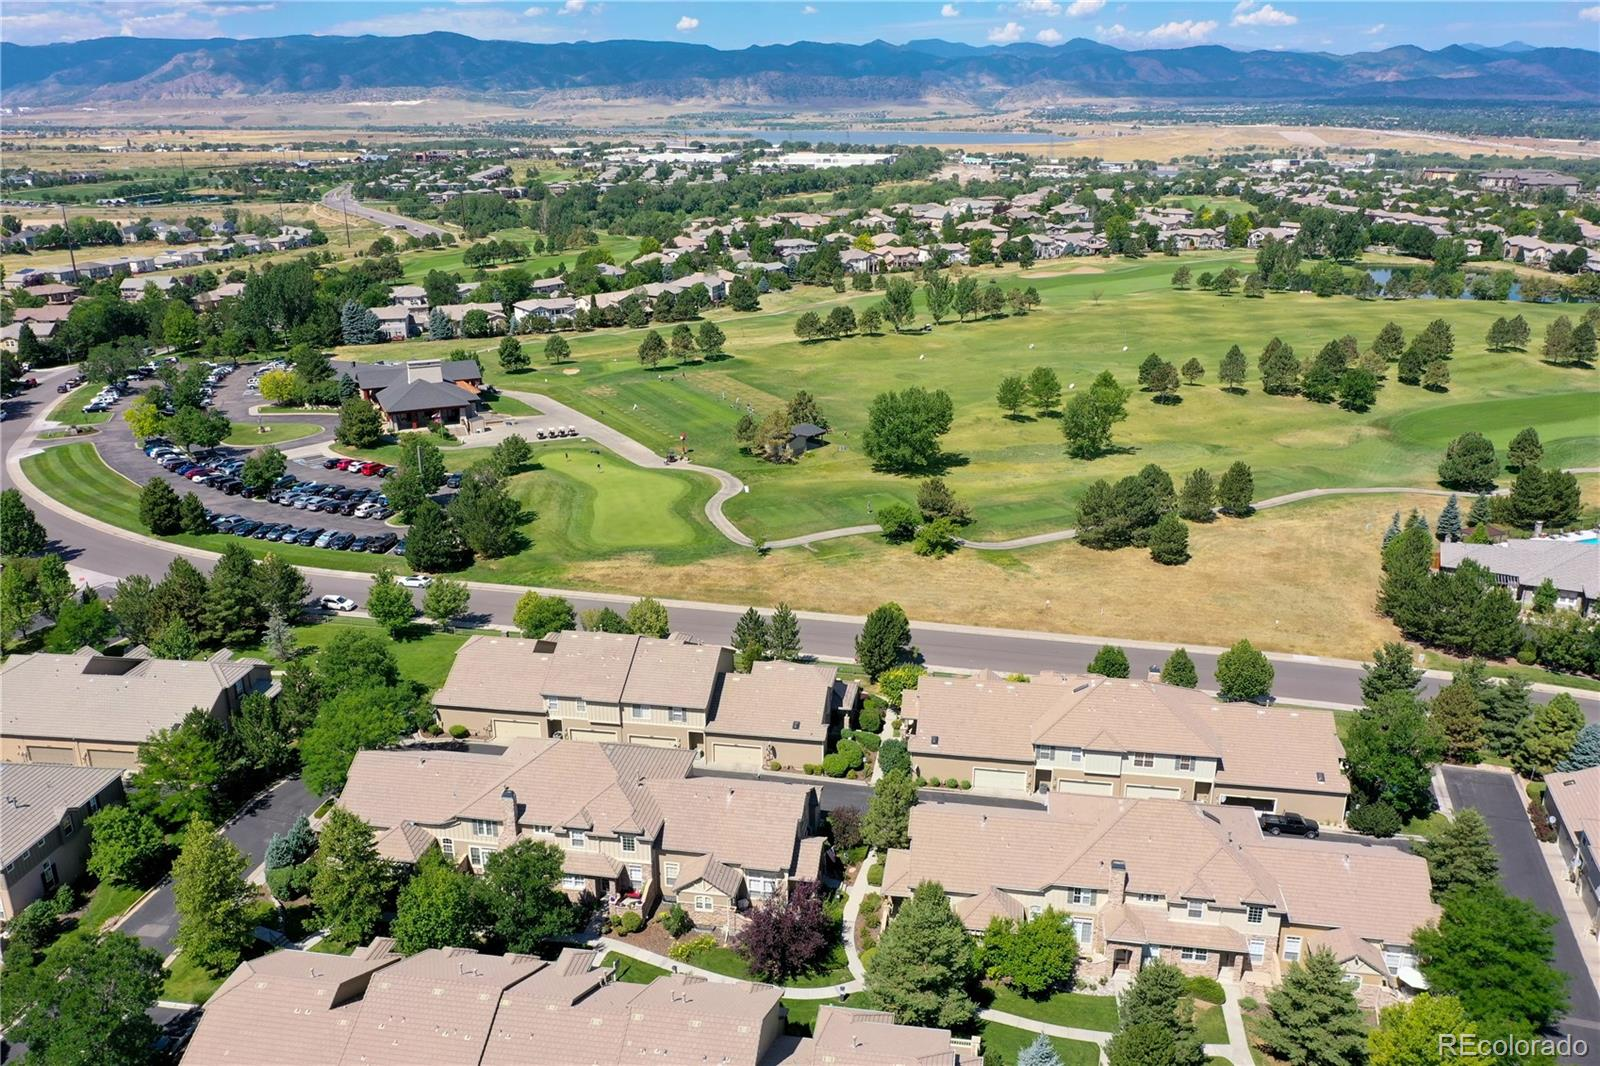 MLS# 7685605 - 2 - 8945 Tappy Toorie Circle, Highlands Ranch, CO 80129